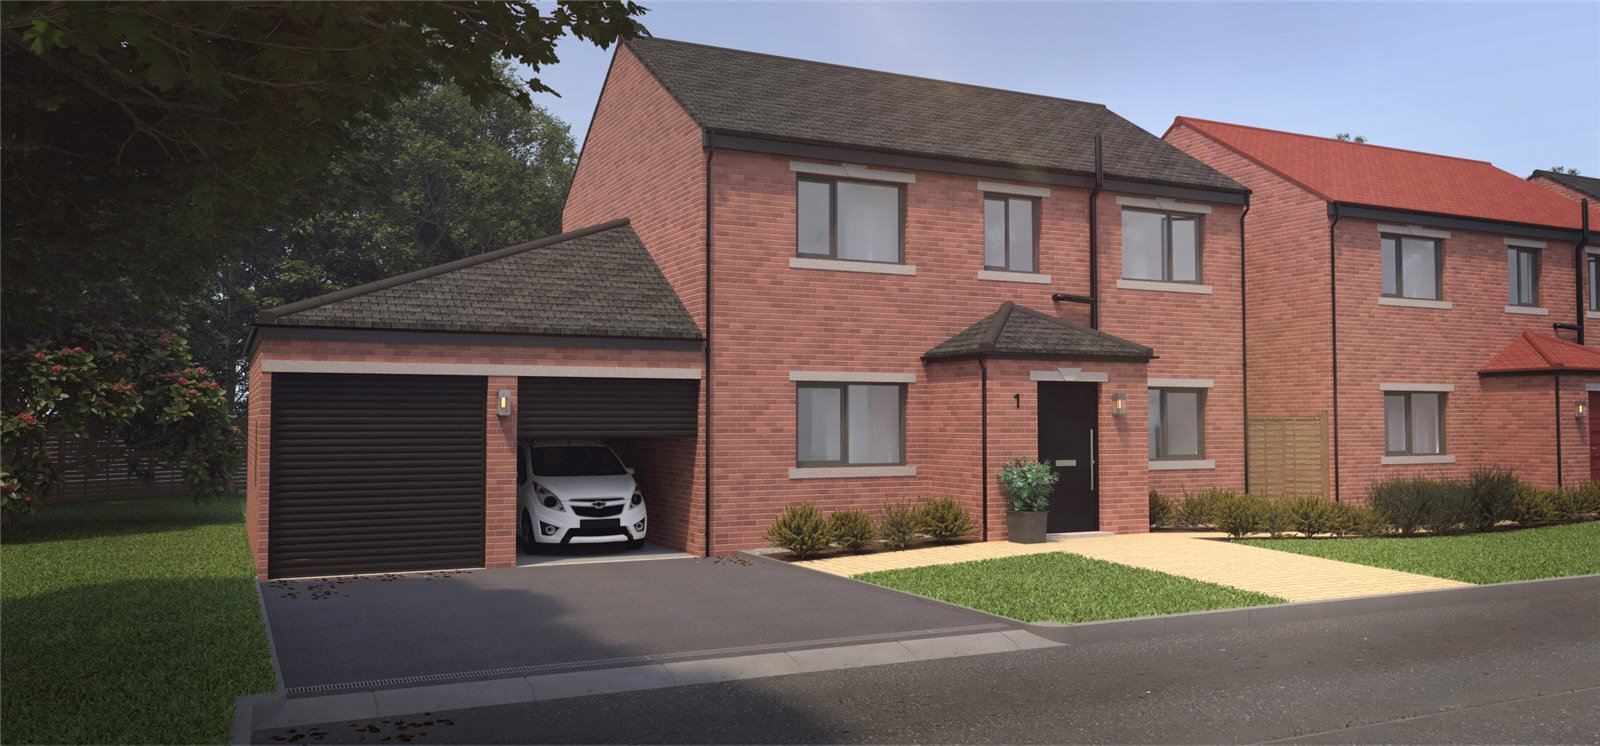 4 bed house for sale in Coach Road, Brotton 1